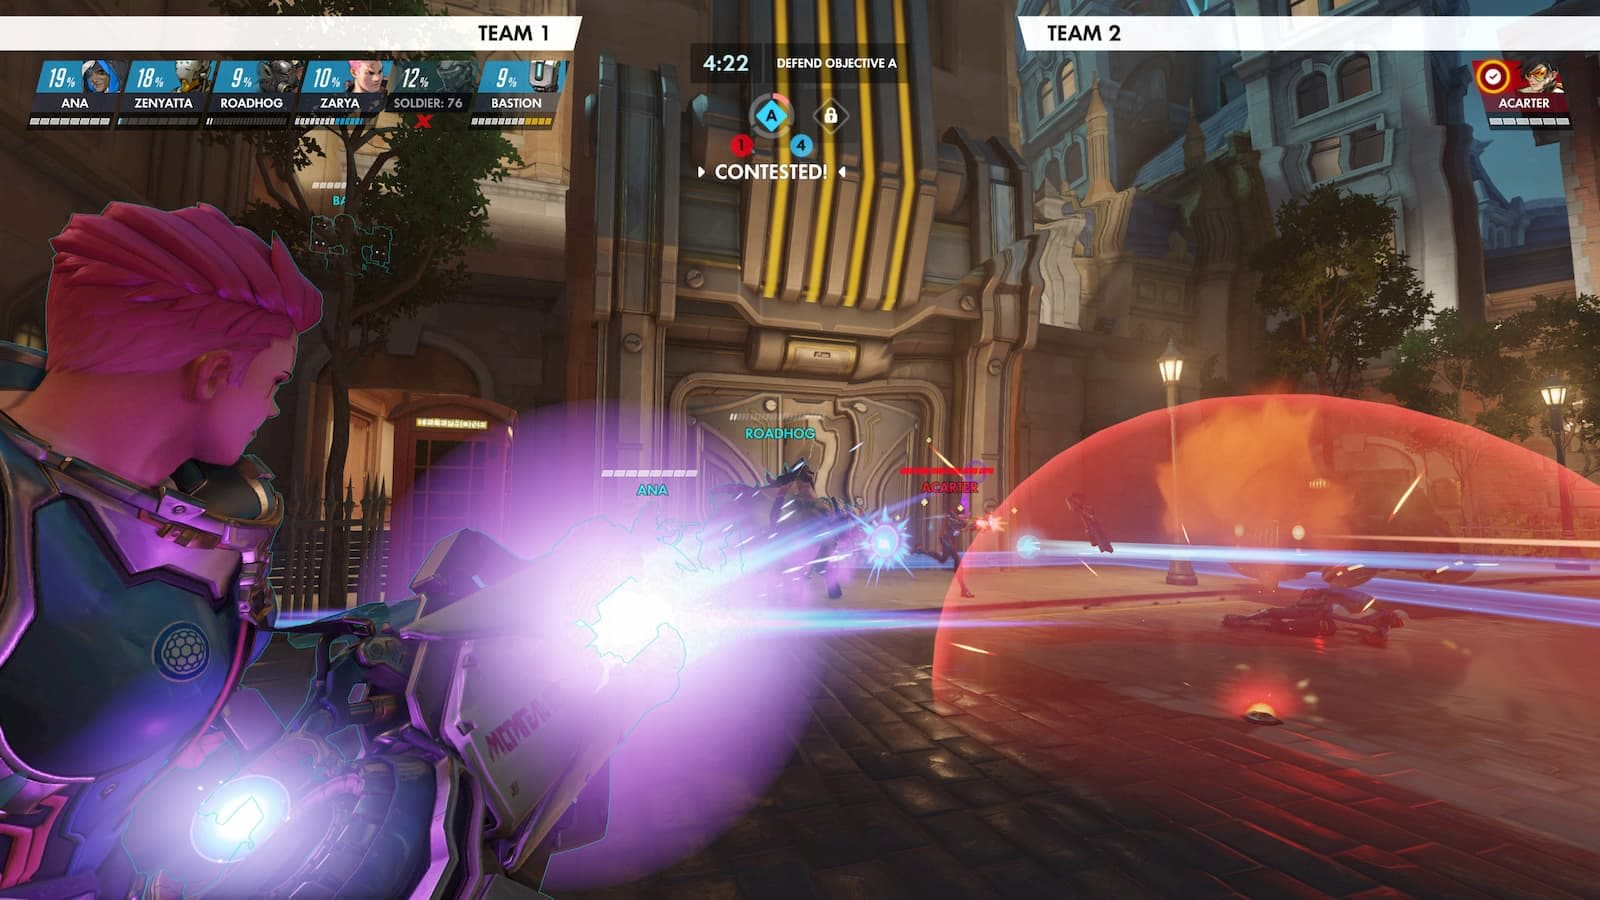 'Overwatch' will let you rewatch your matches from any angle